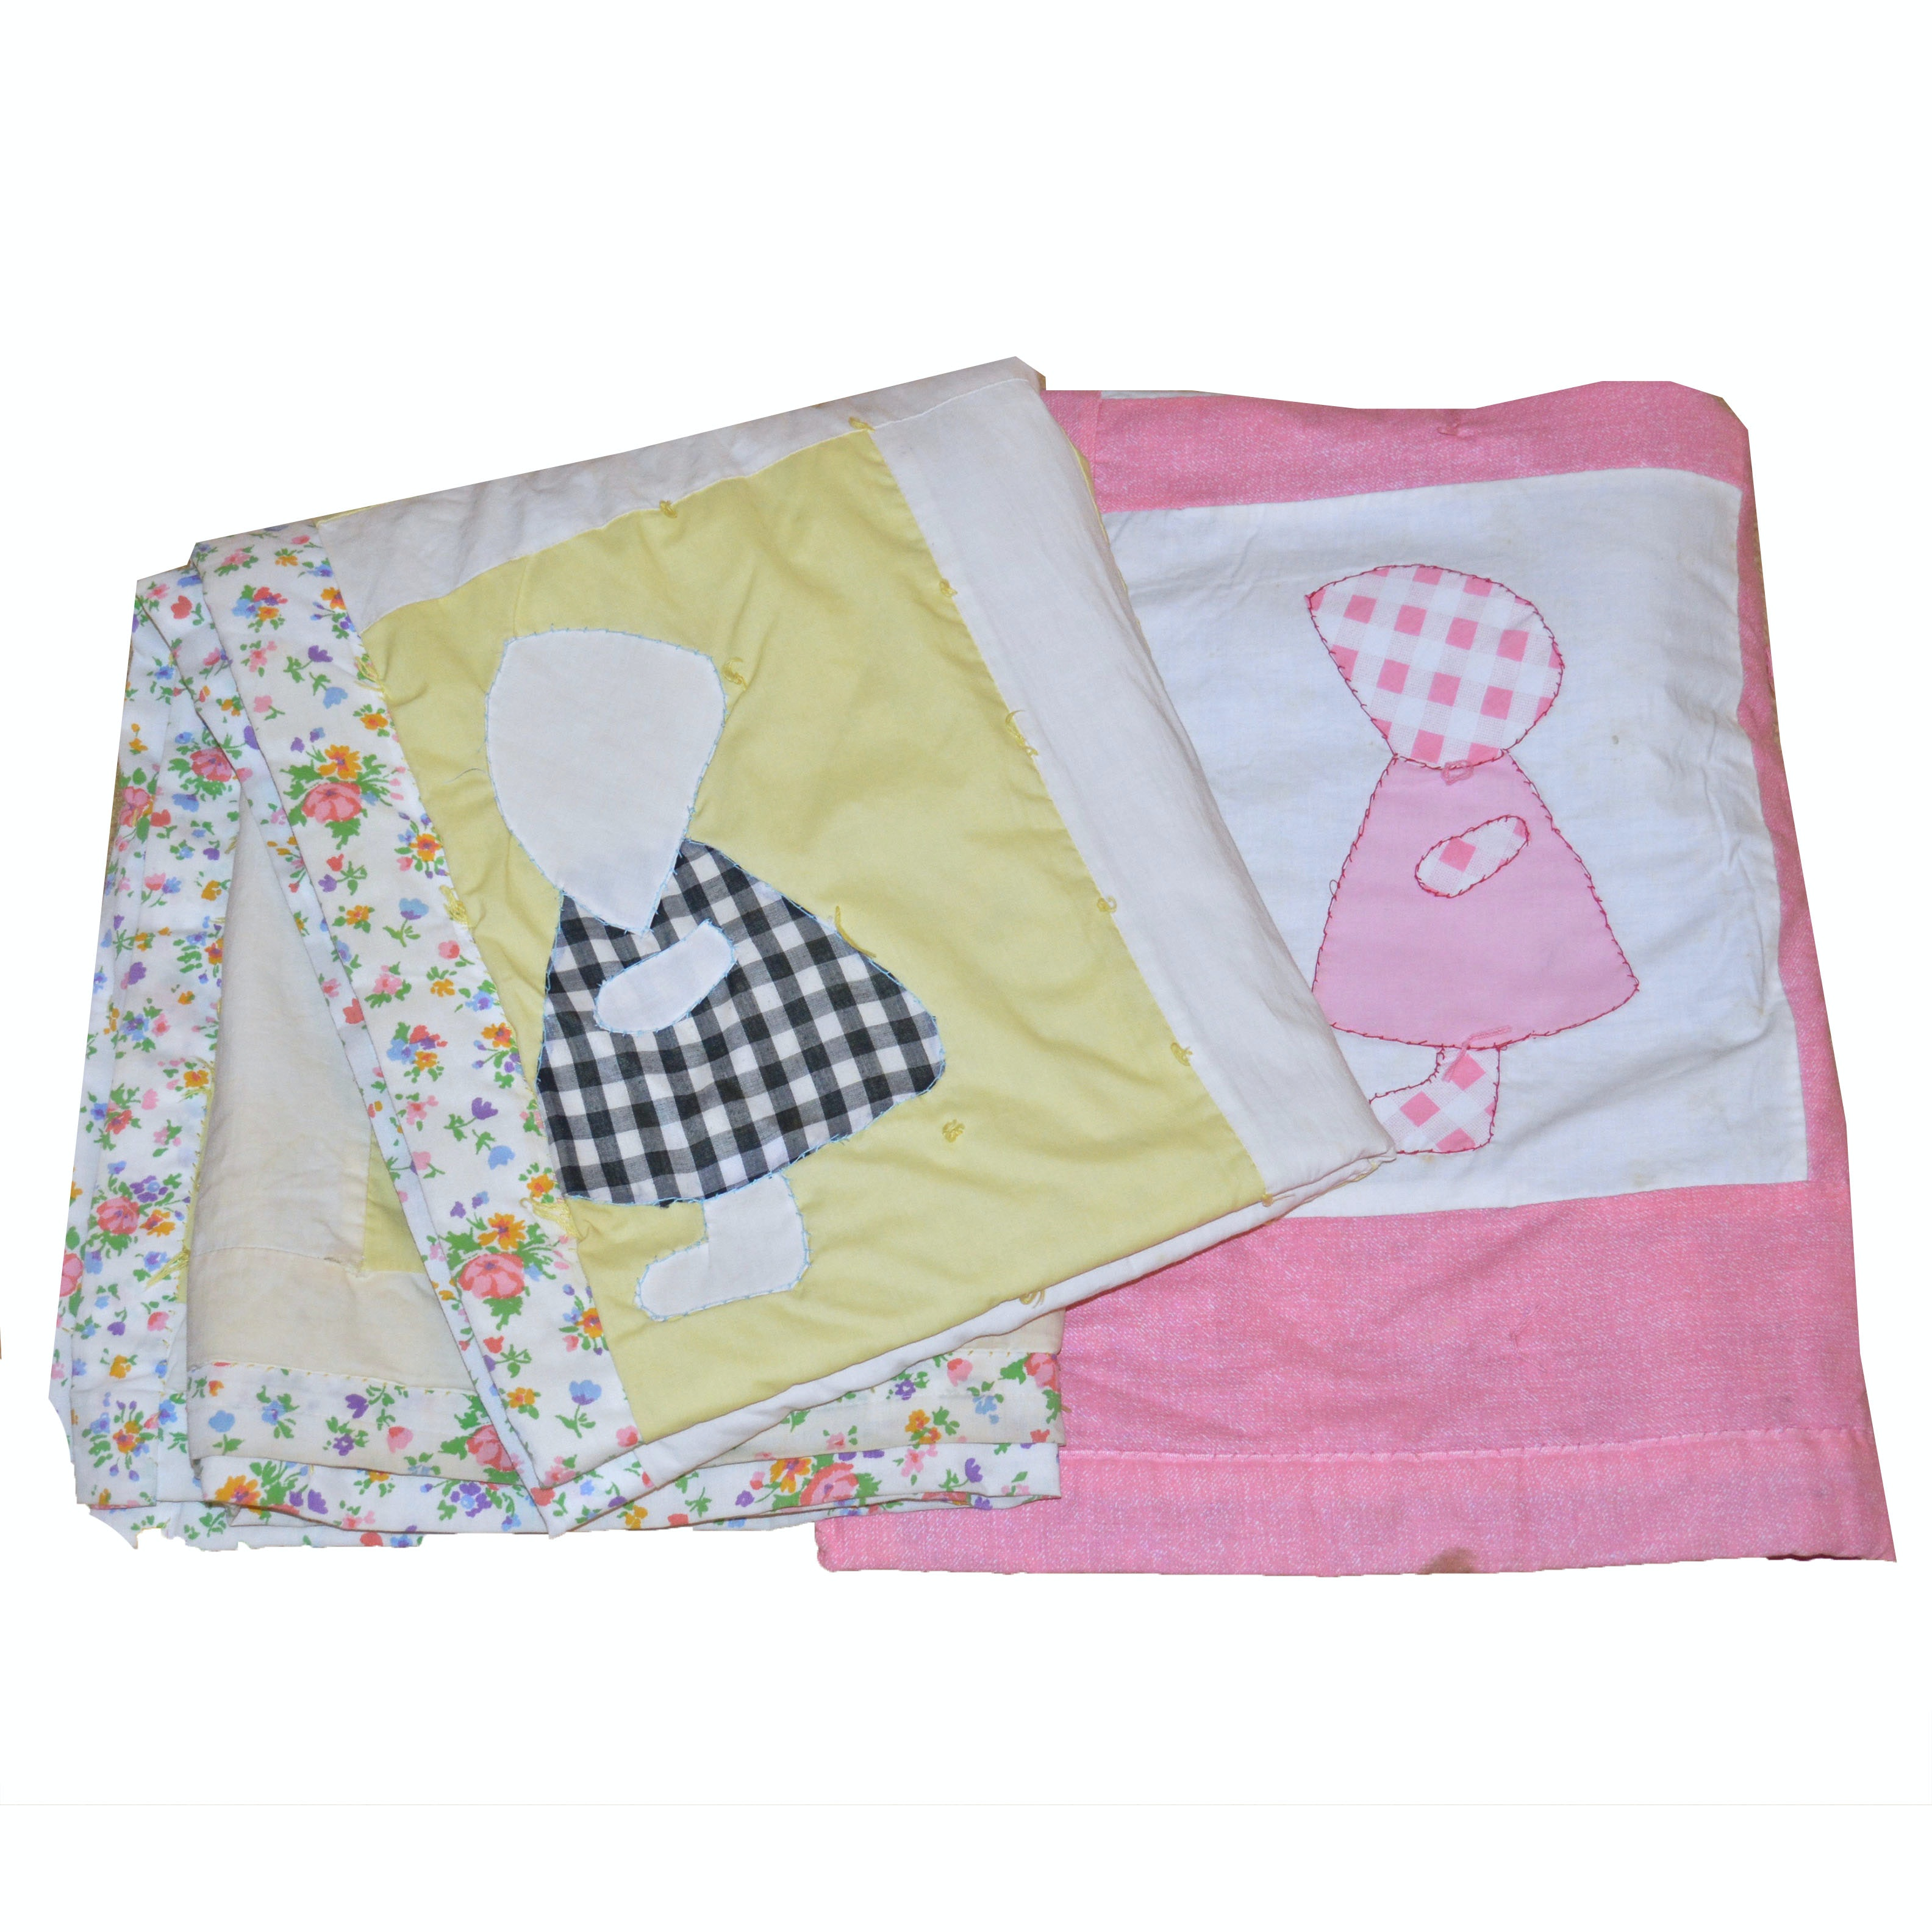 Vintage Hand-Sewn Quilt and Crib Blanket